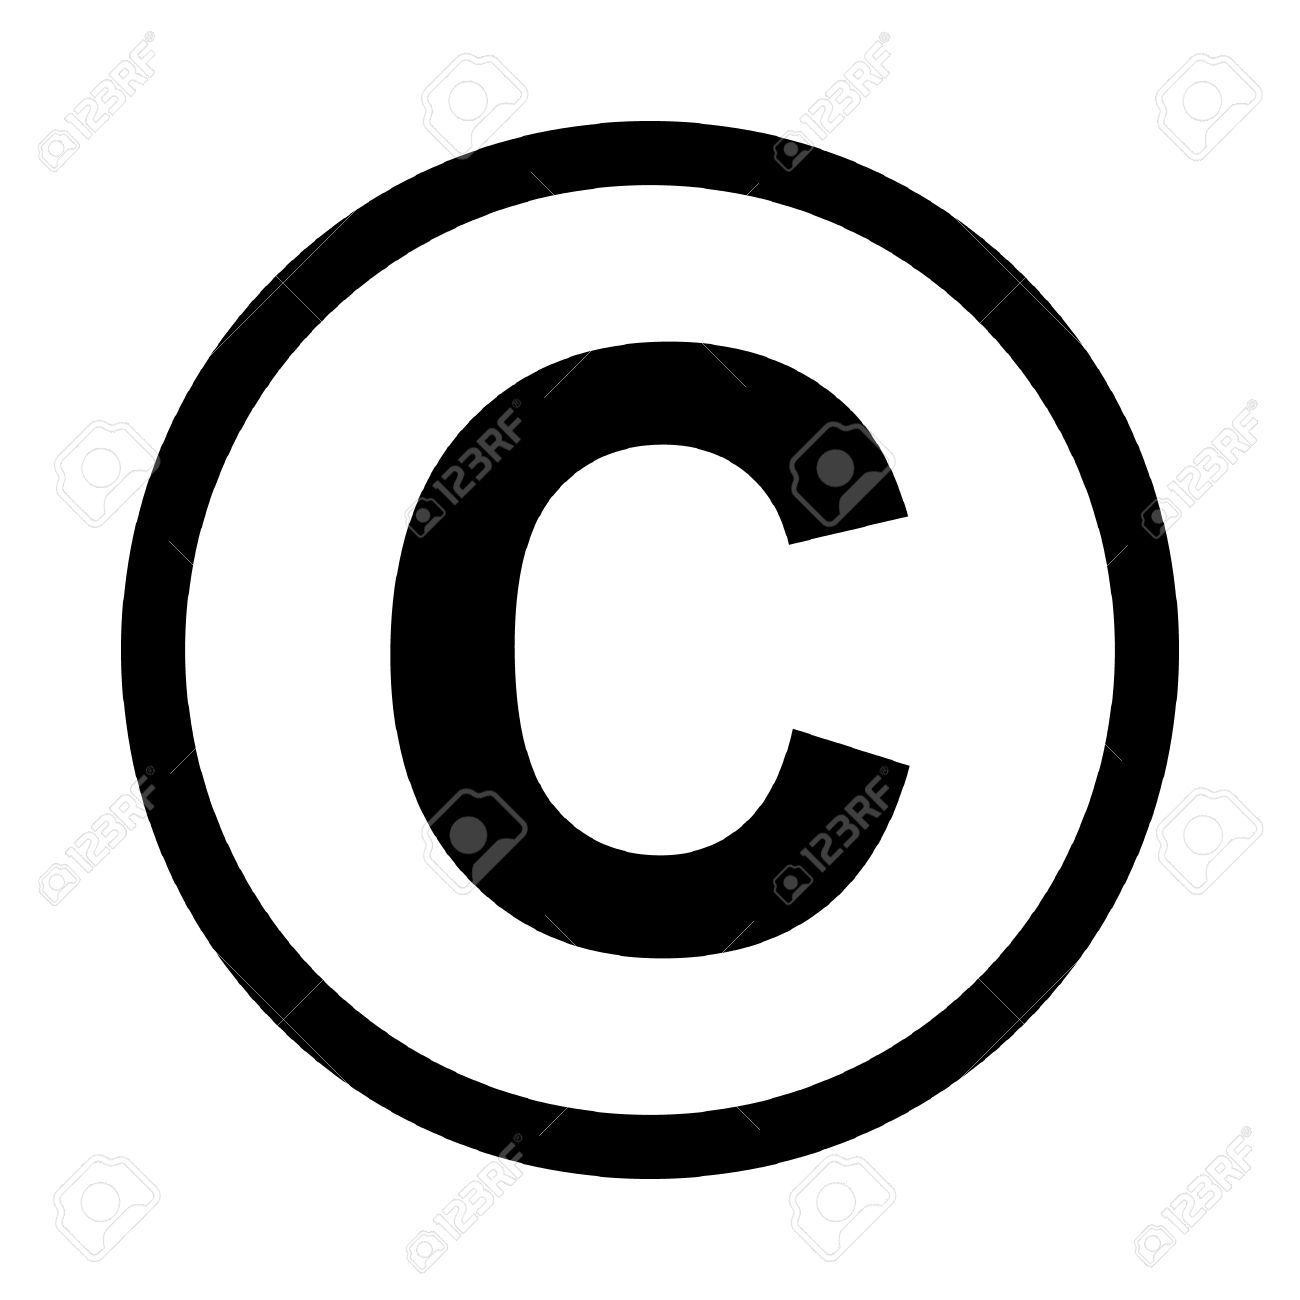 Copyright symbol icon isolated on white background royalty free copyright symbol icon isolated on white background royalty free buycottarizona Images